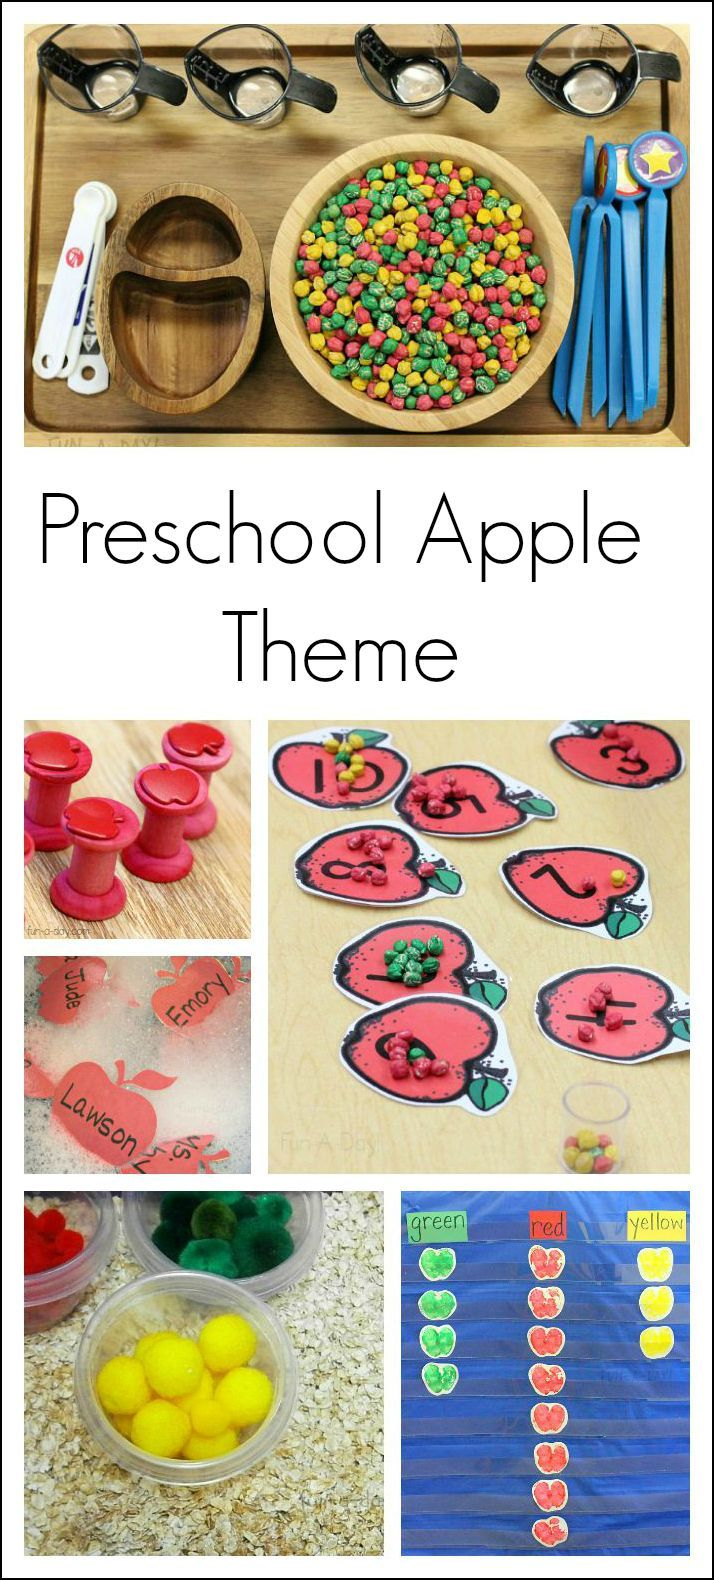 Kindergarten and preschool apple theme activities and ideas